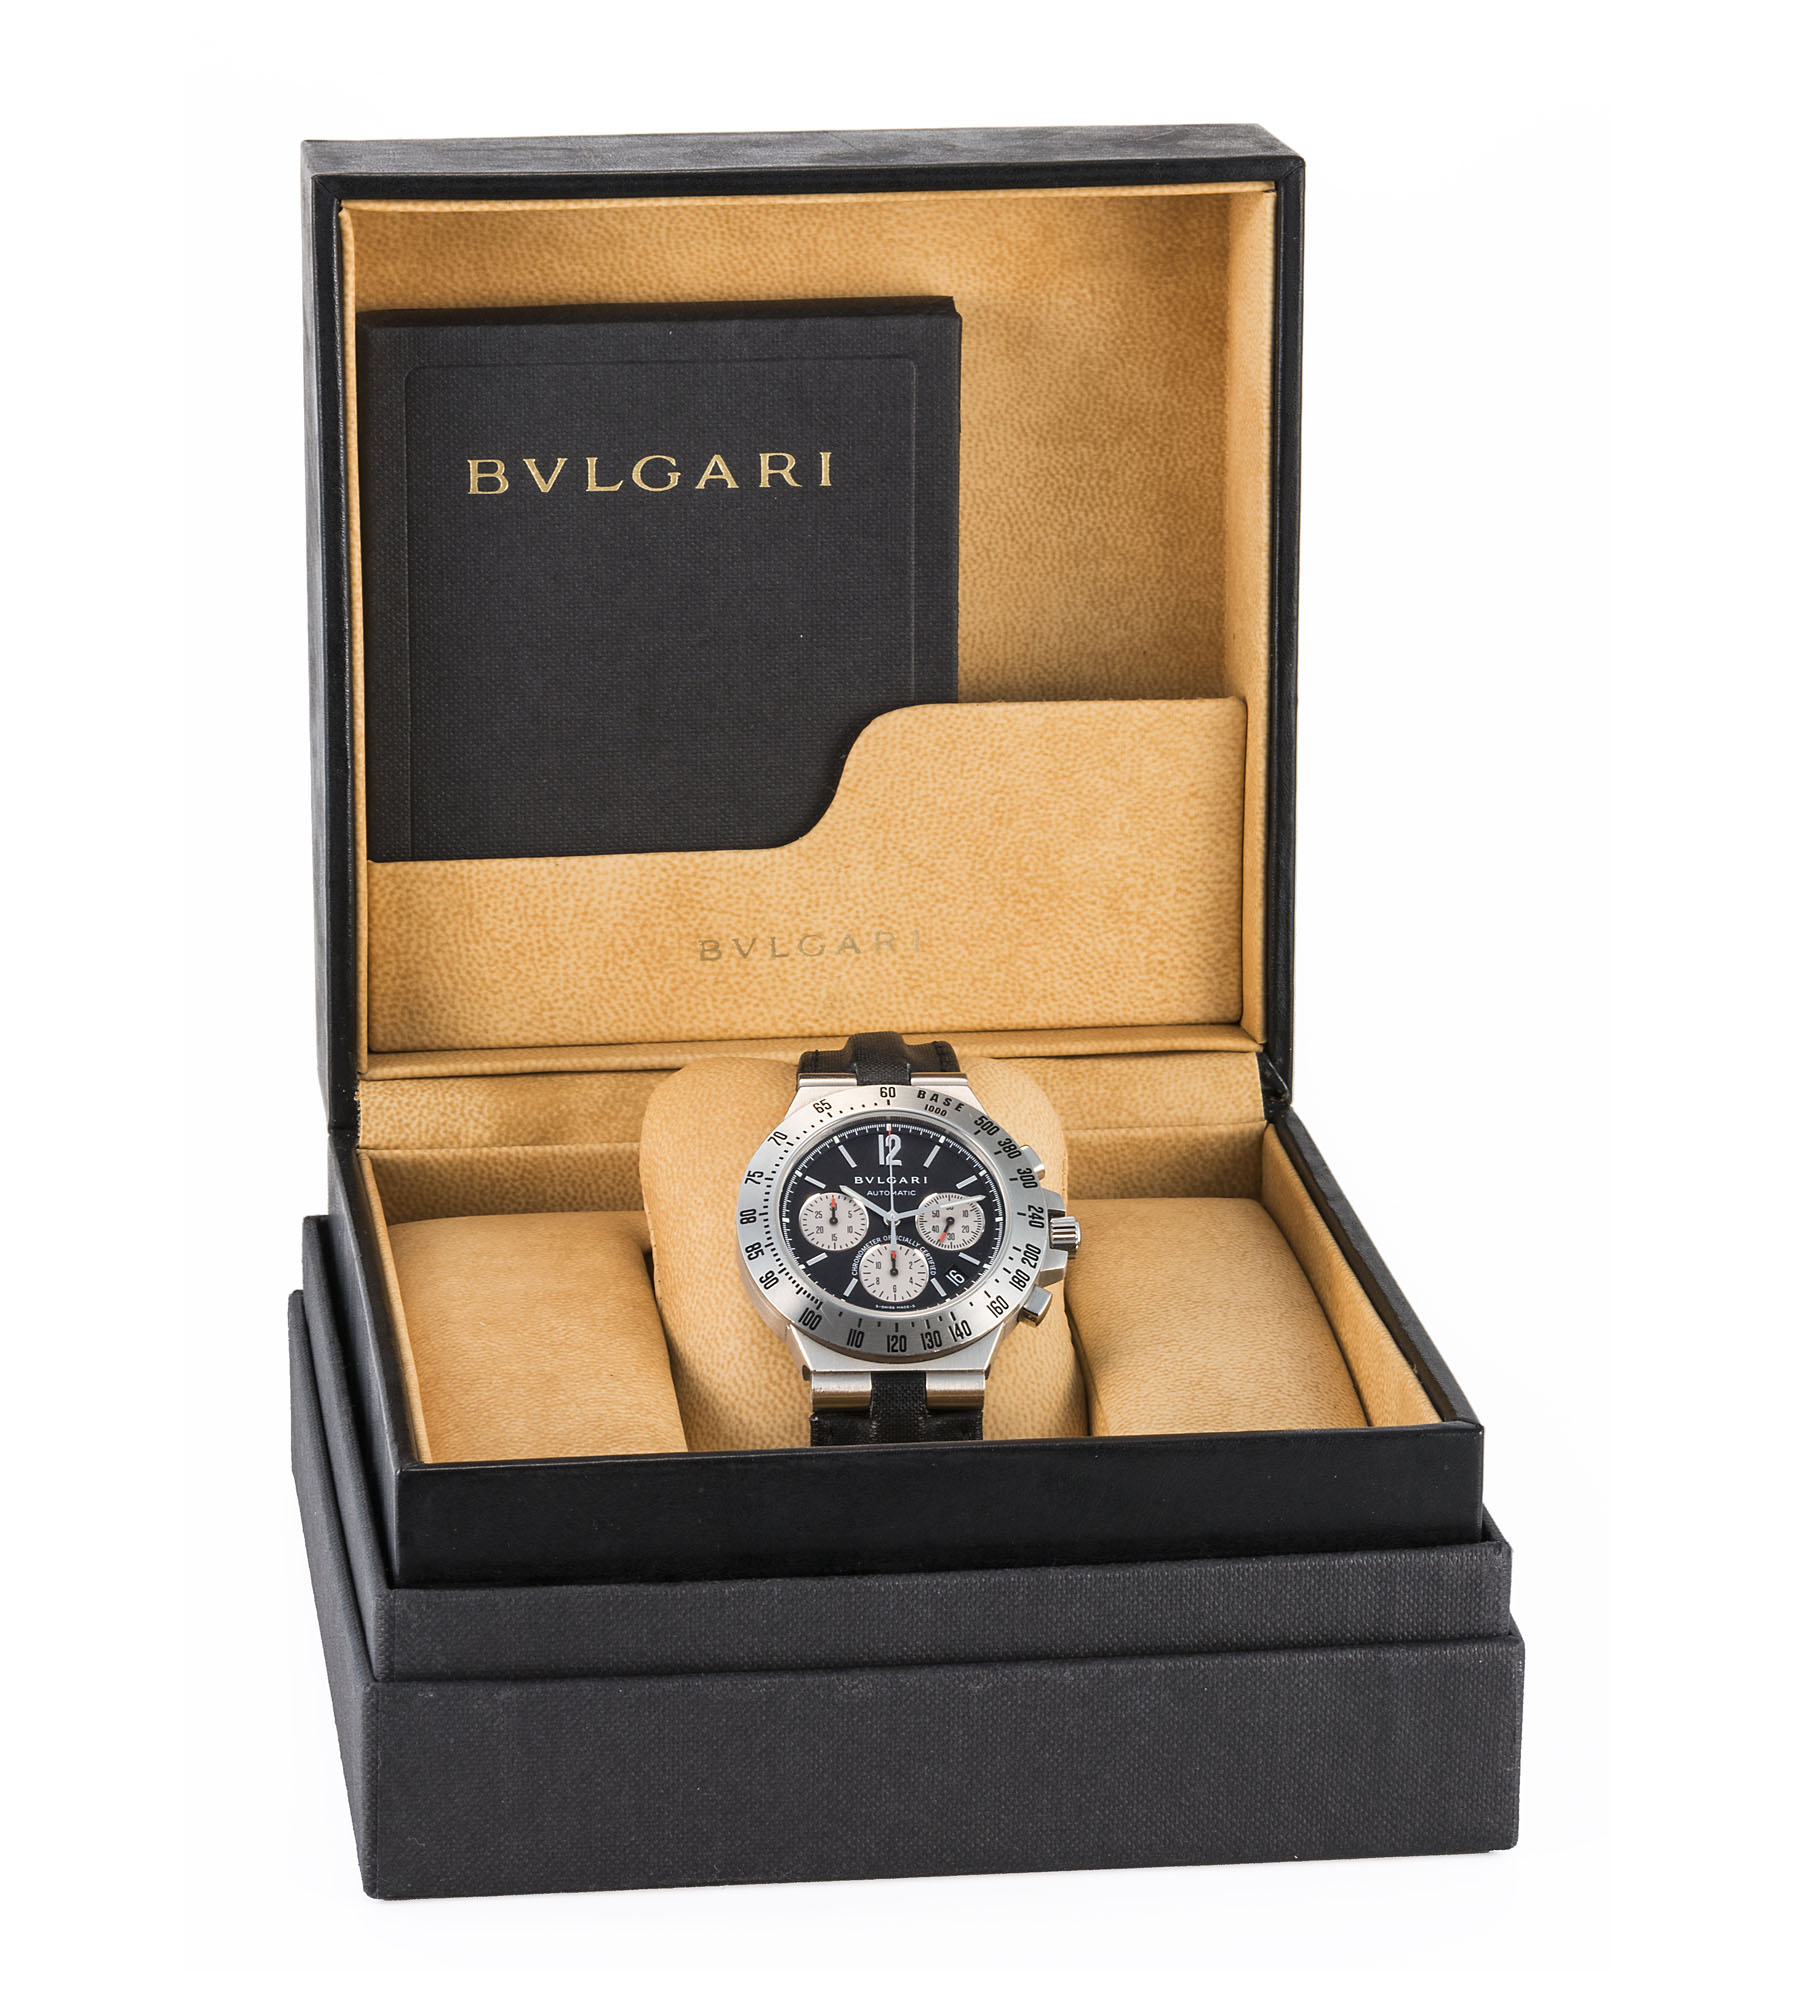 bulgari-montre-chronographe